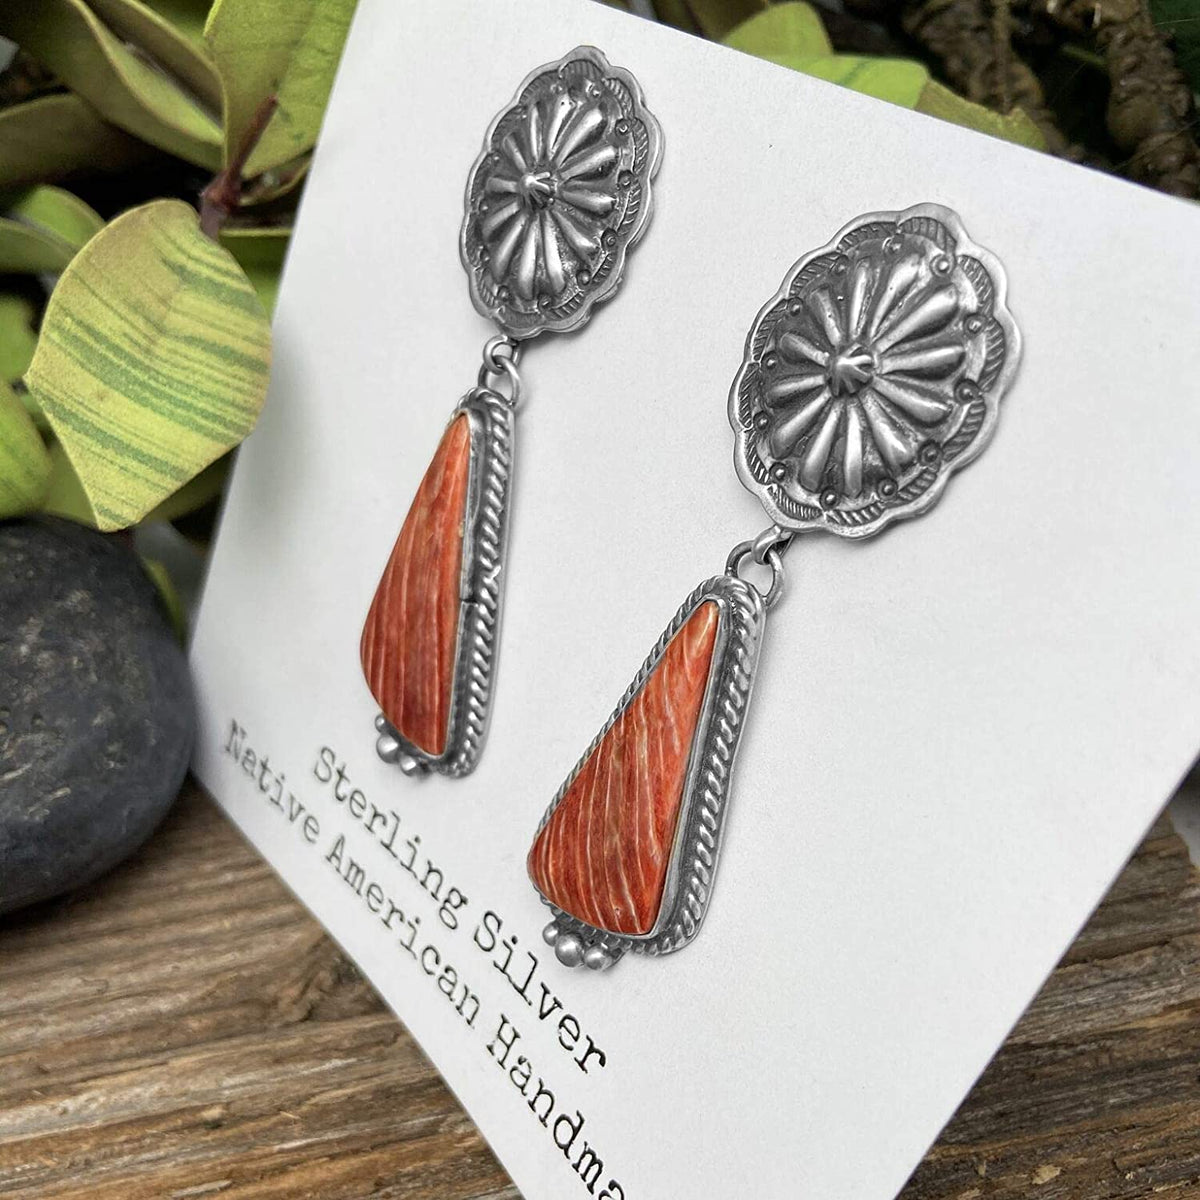 Genuine Red Spiny Oyster Statement Earrings, Oxidized Sterling Silver, Authentic Navajo Native American USA Handmade, Artist Signed, Nickle Free, Southwest Vintage S